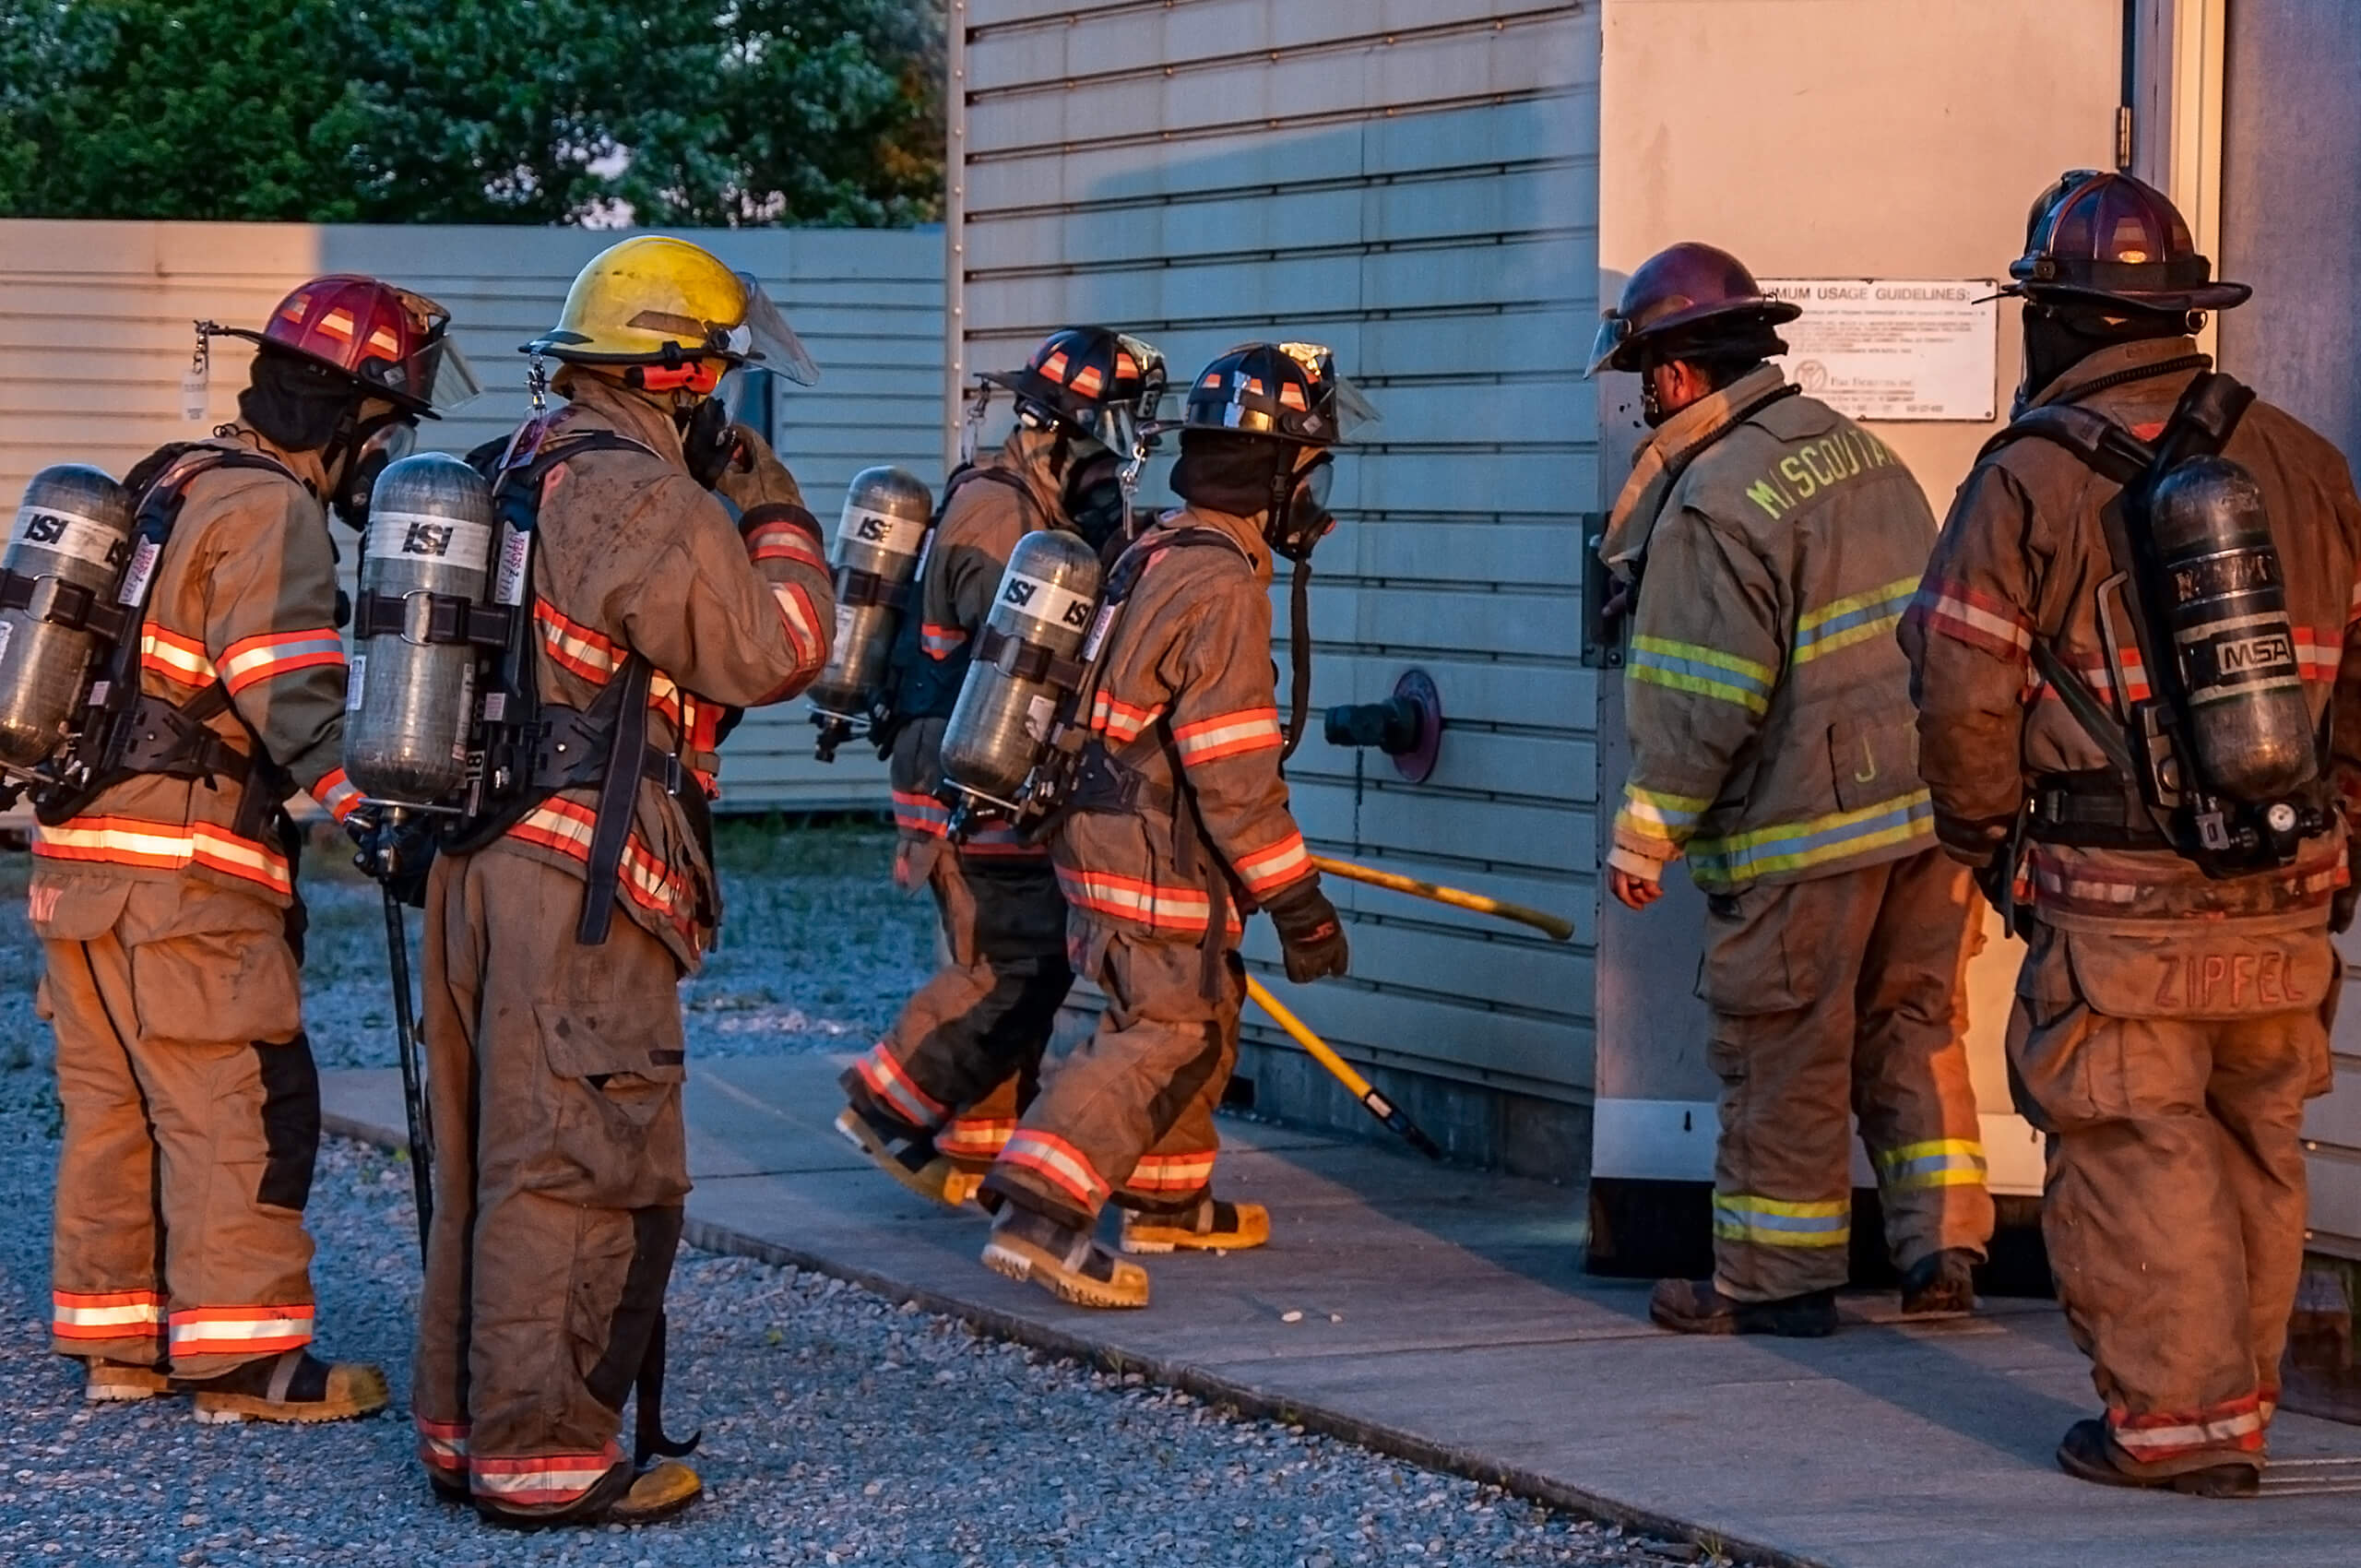 A group of firefighters entering a smoke filled building for a training exercise.